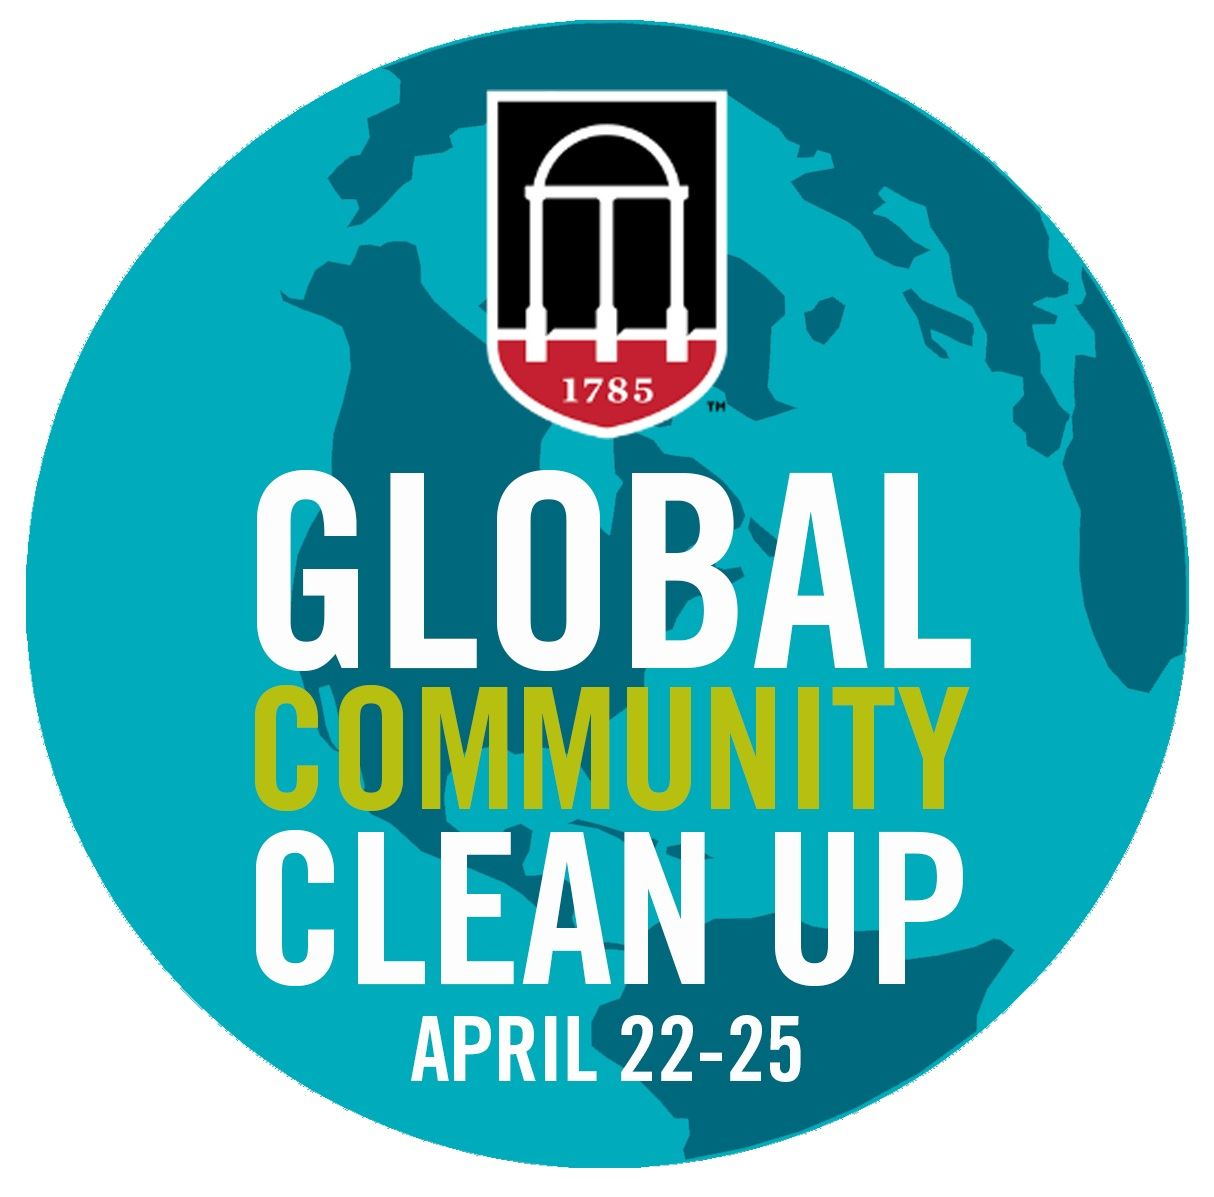 Earth-Day-2021_Community-CleanUp_with-Date